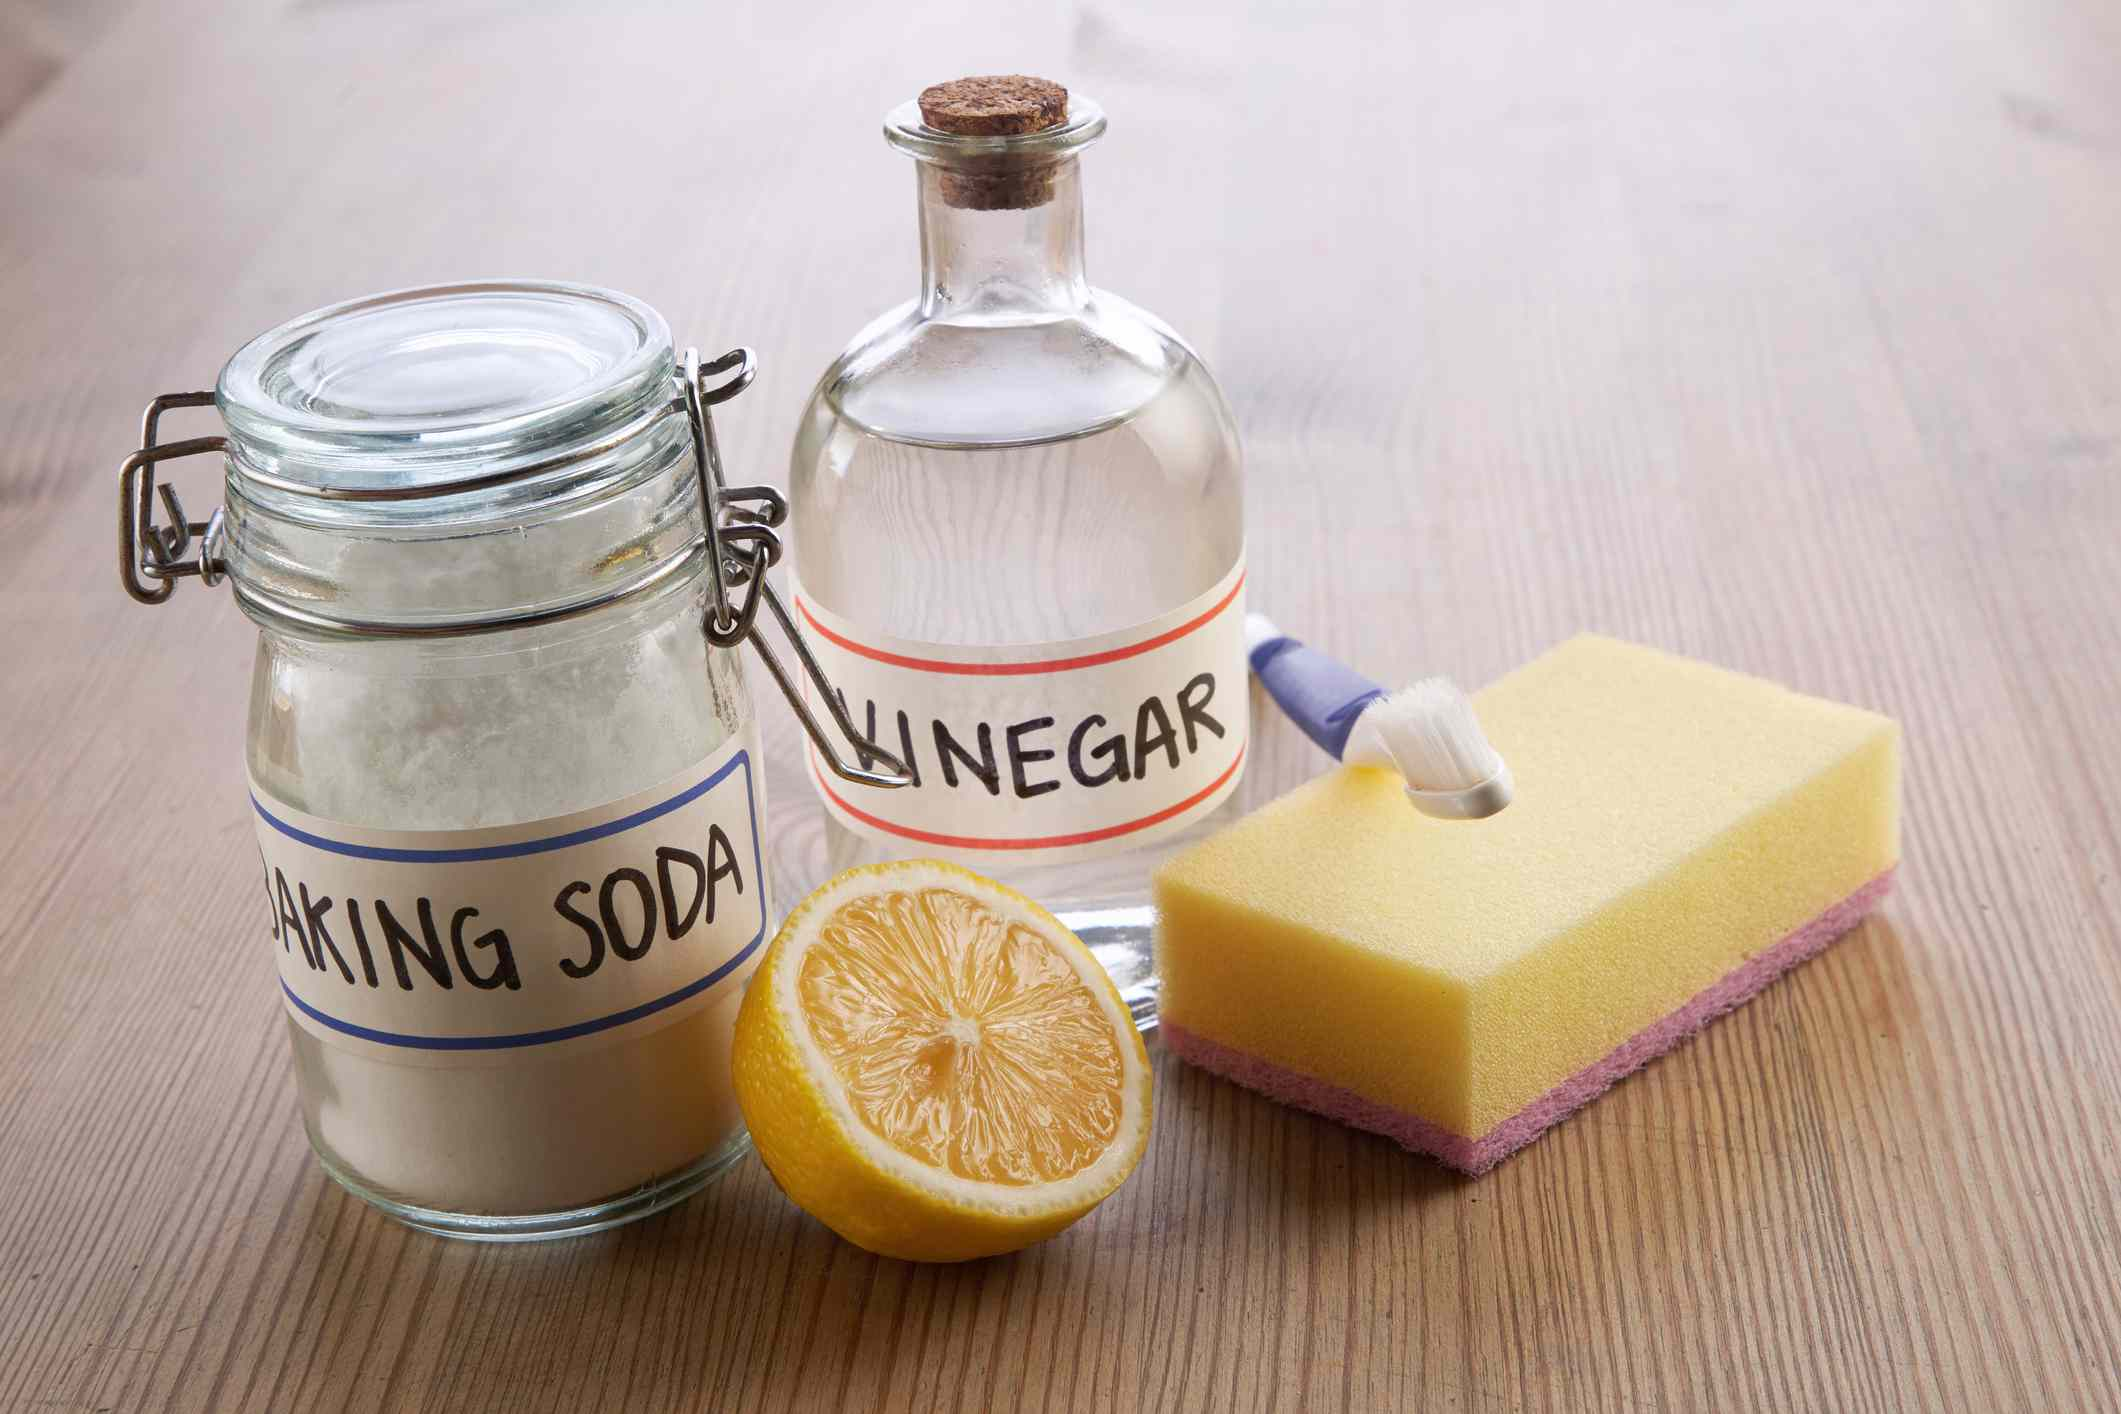 Vinegar, baking soda and cleaning products on a wood table.